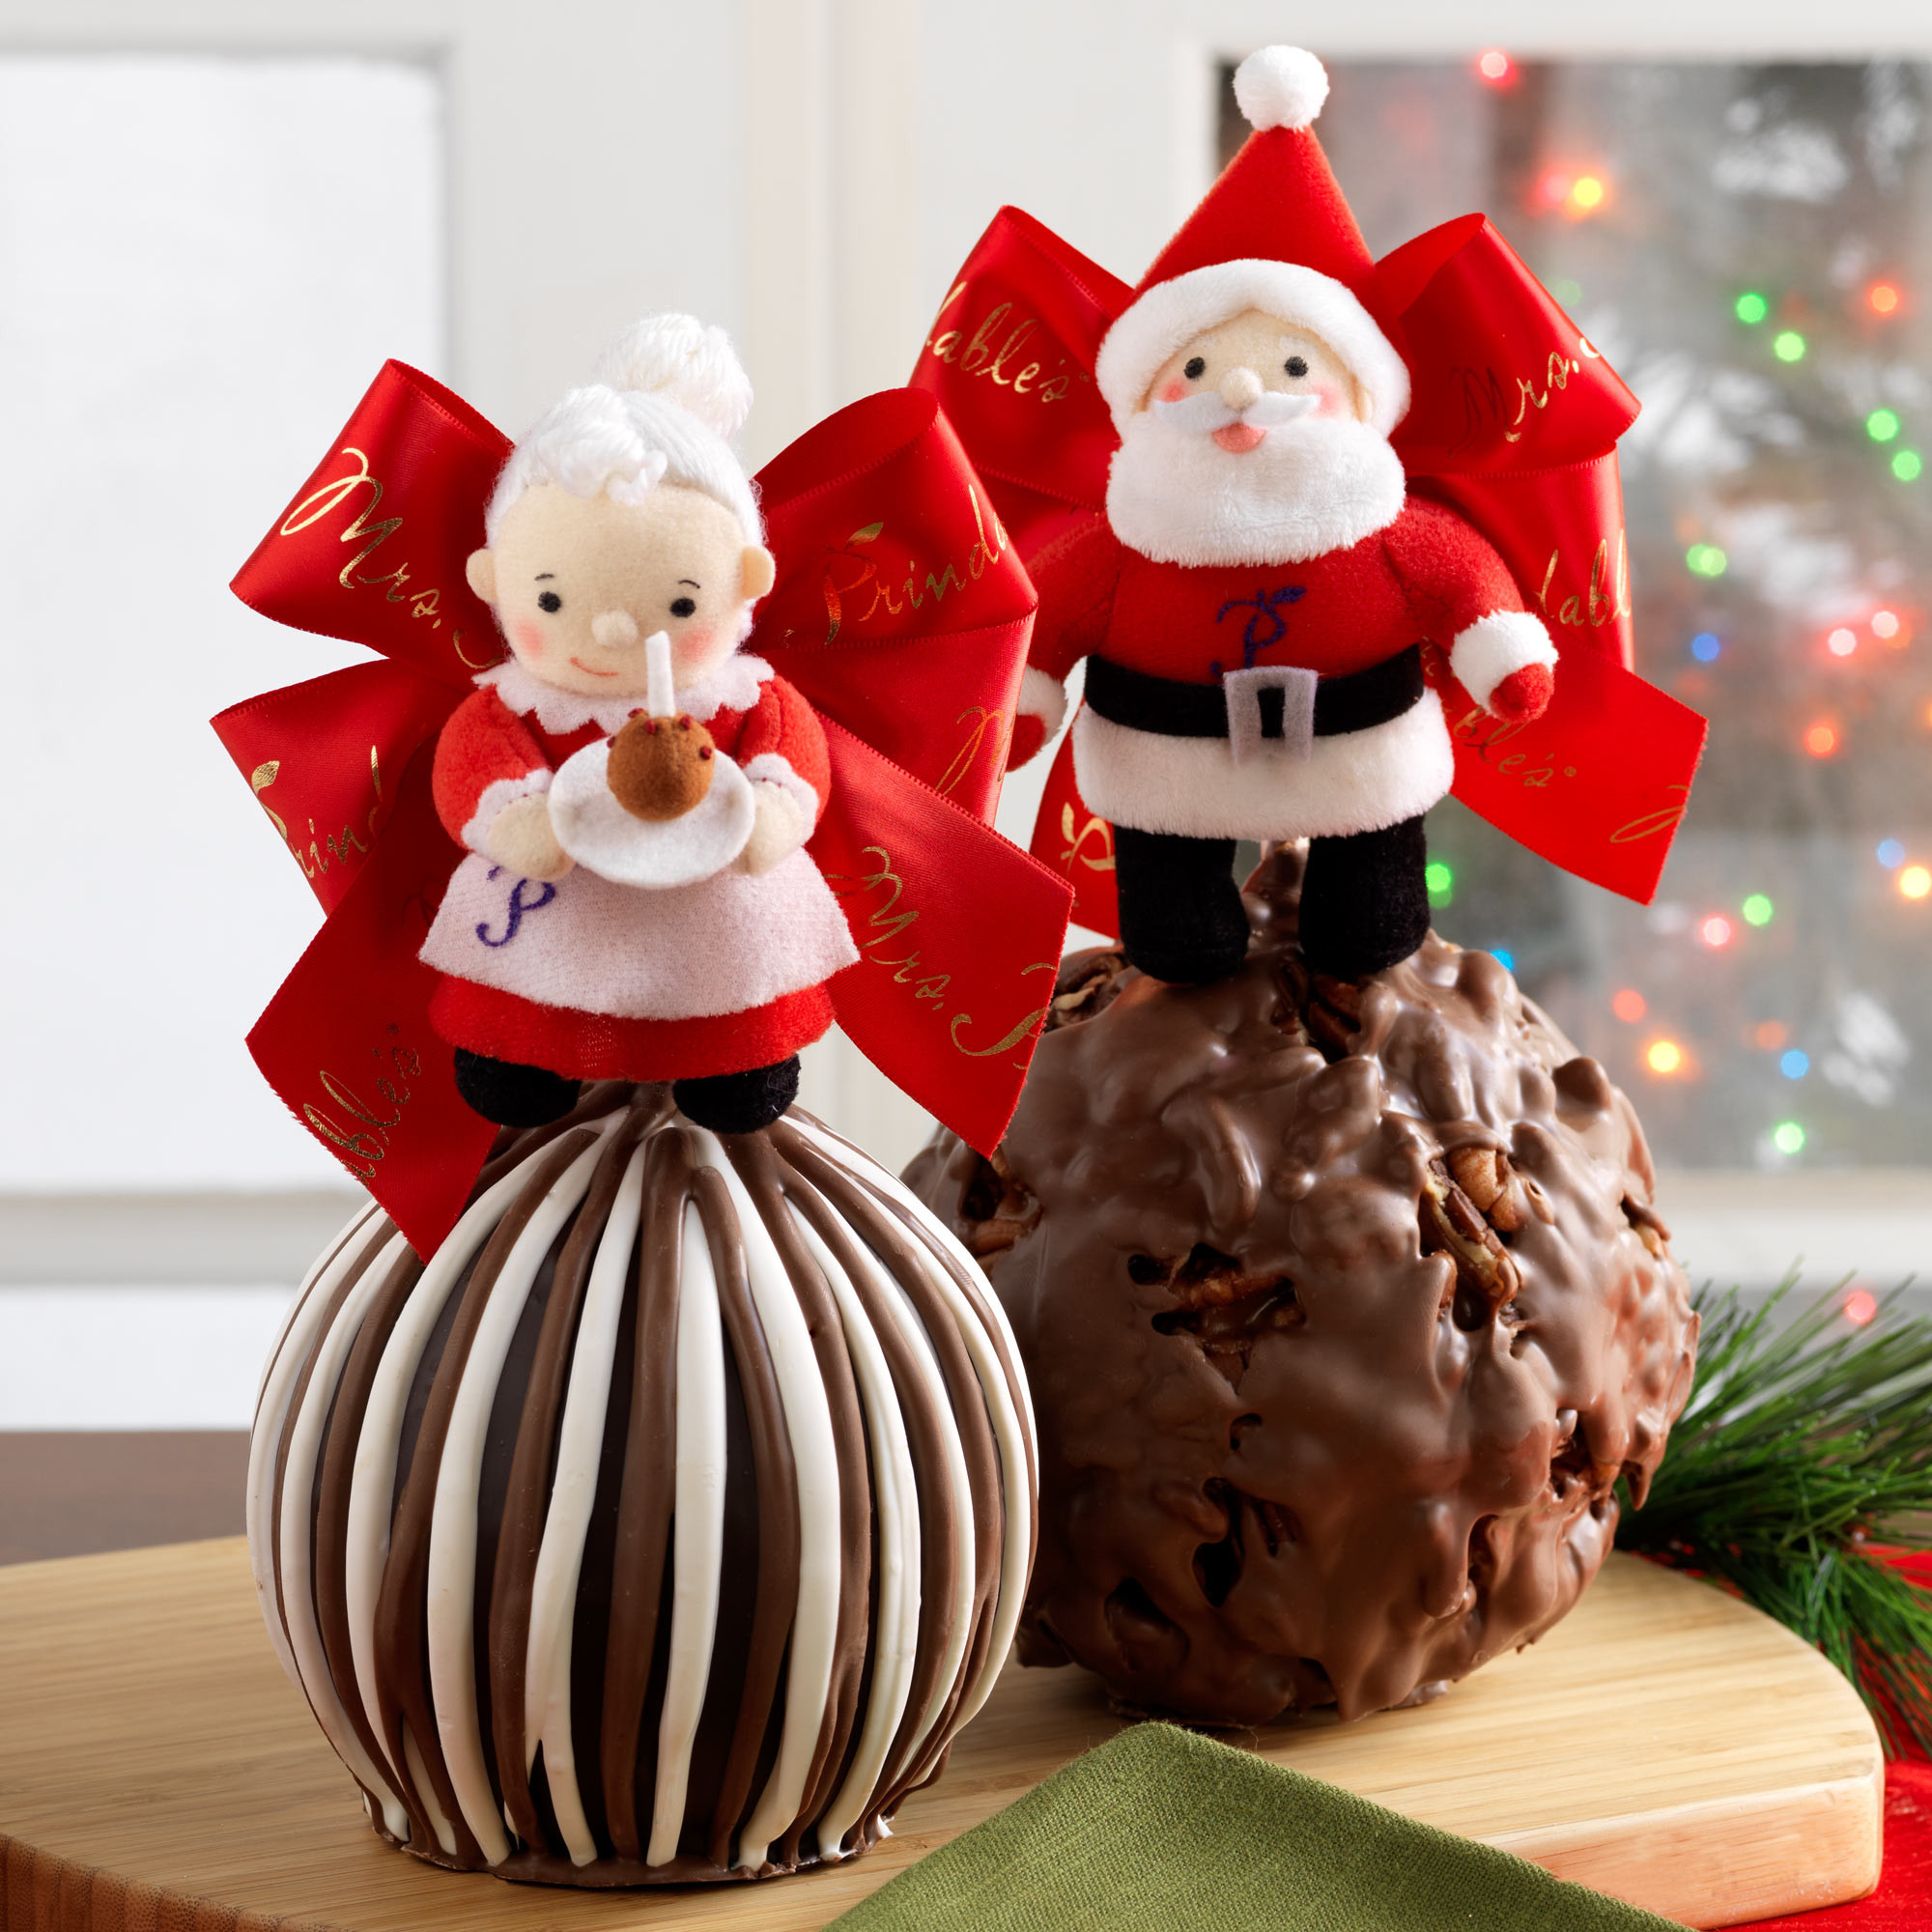 Christmas Candy Apples  MrMrsClaus Mrs Prindables apples